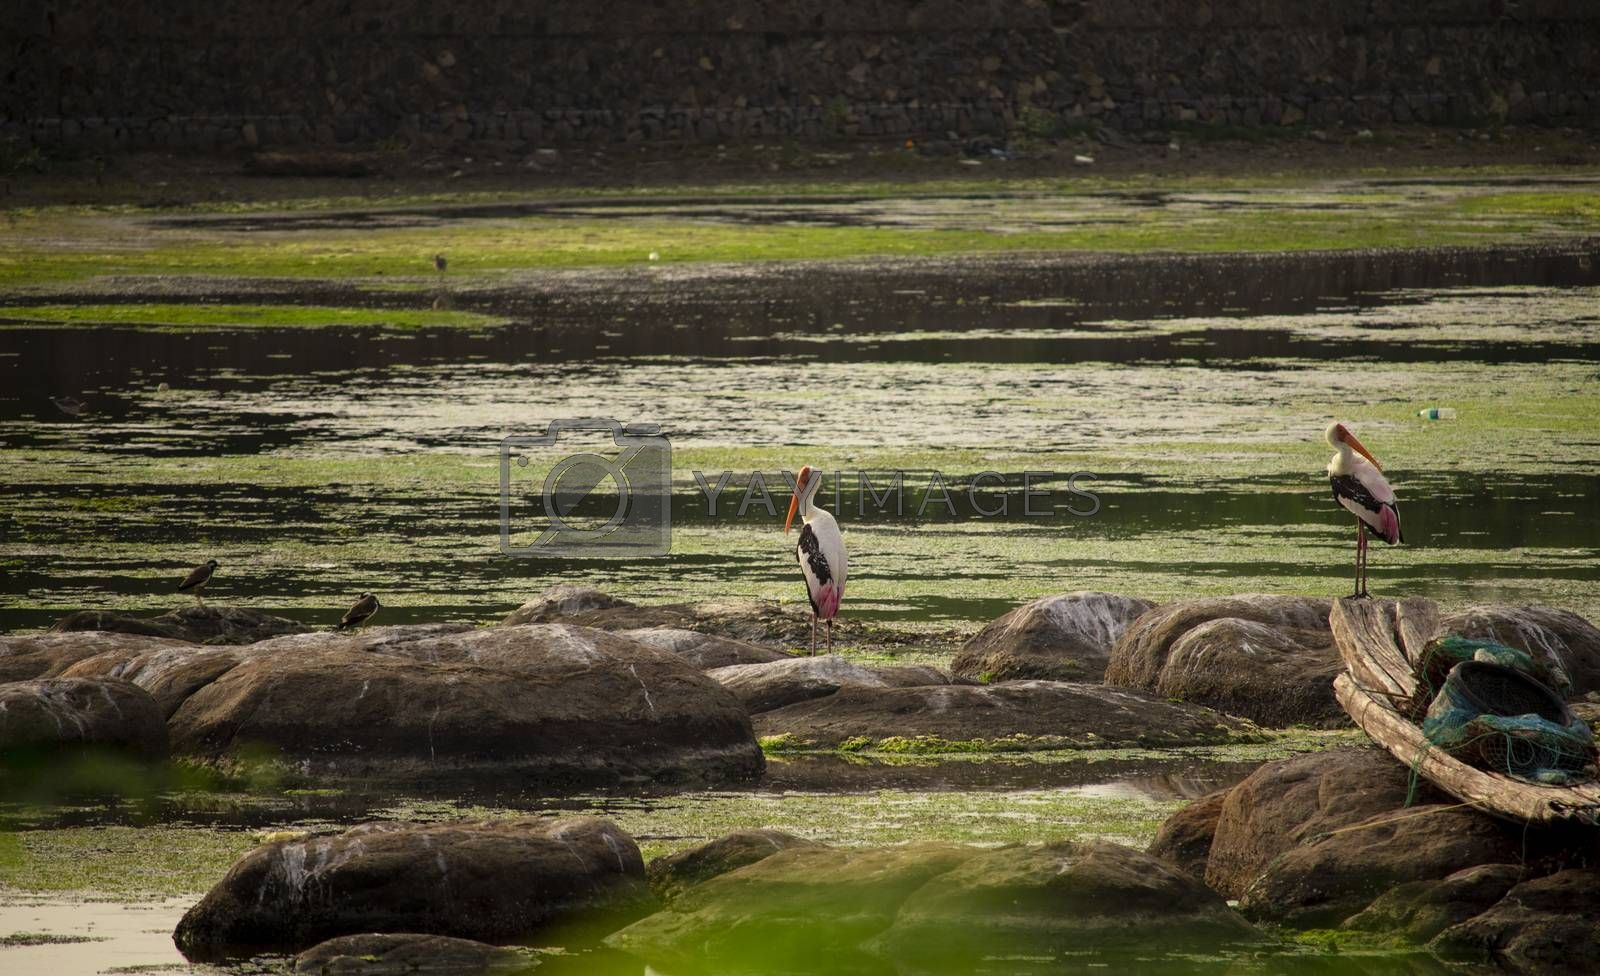 A couple of PAINTED STORK birds sitting on the rock stones in the middle of the water in the pond